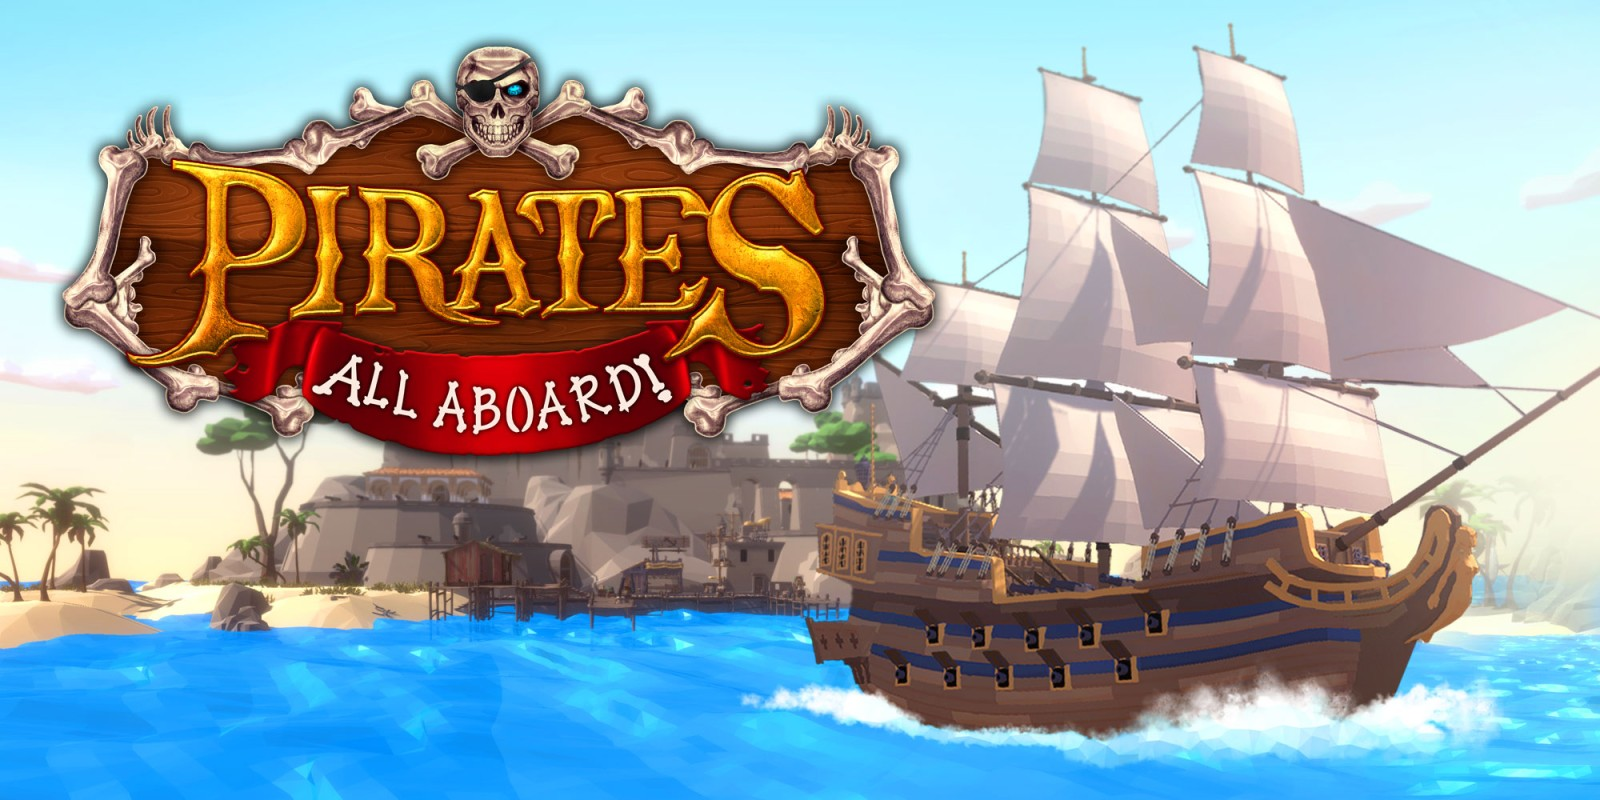 Pirates: All Aboard!